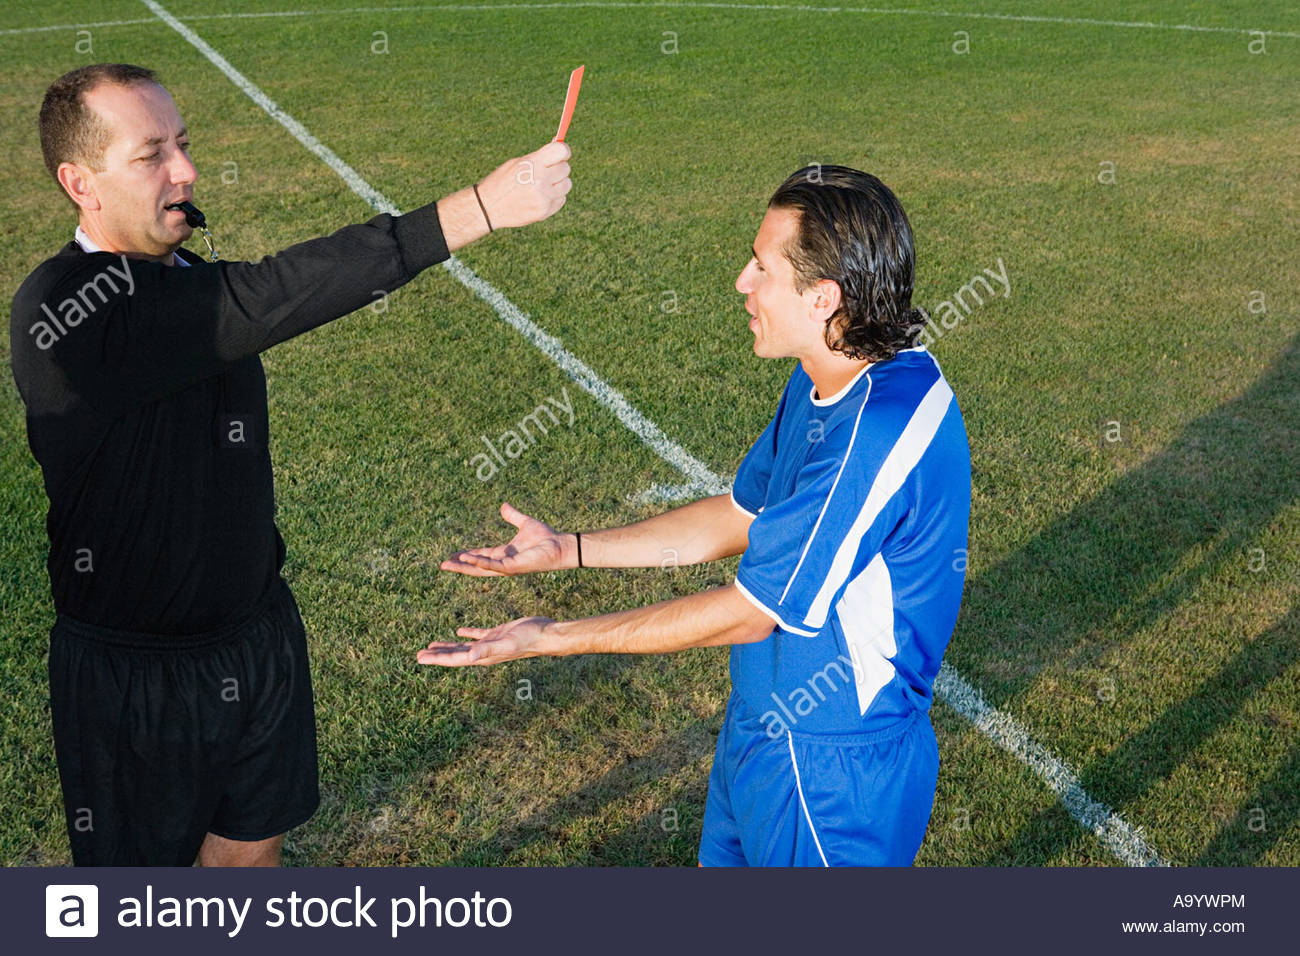 Referee showing footballer red card - Stock Image